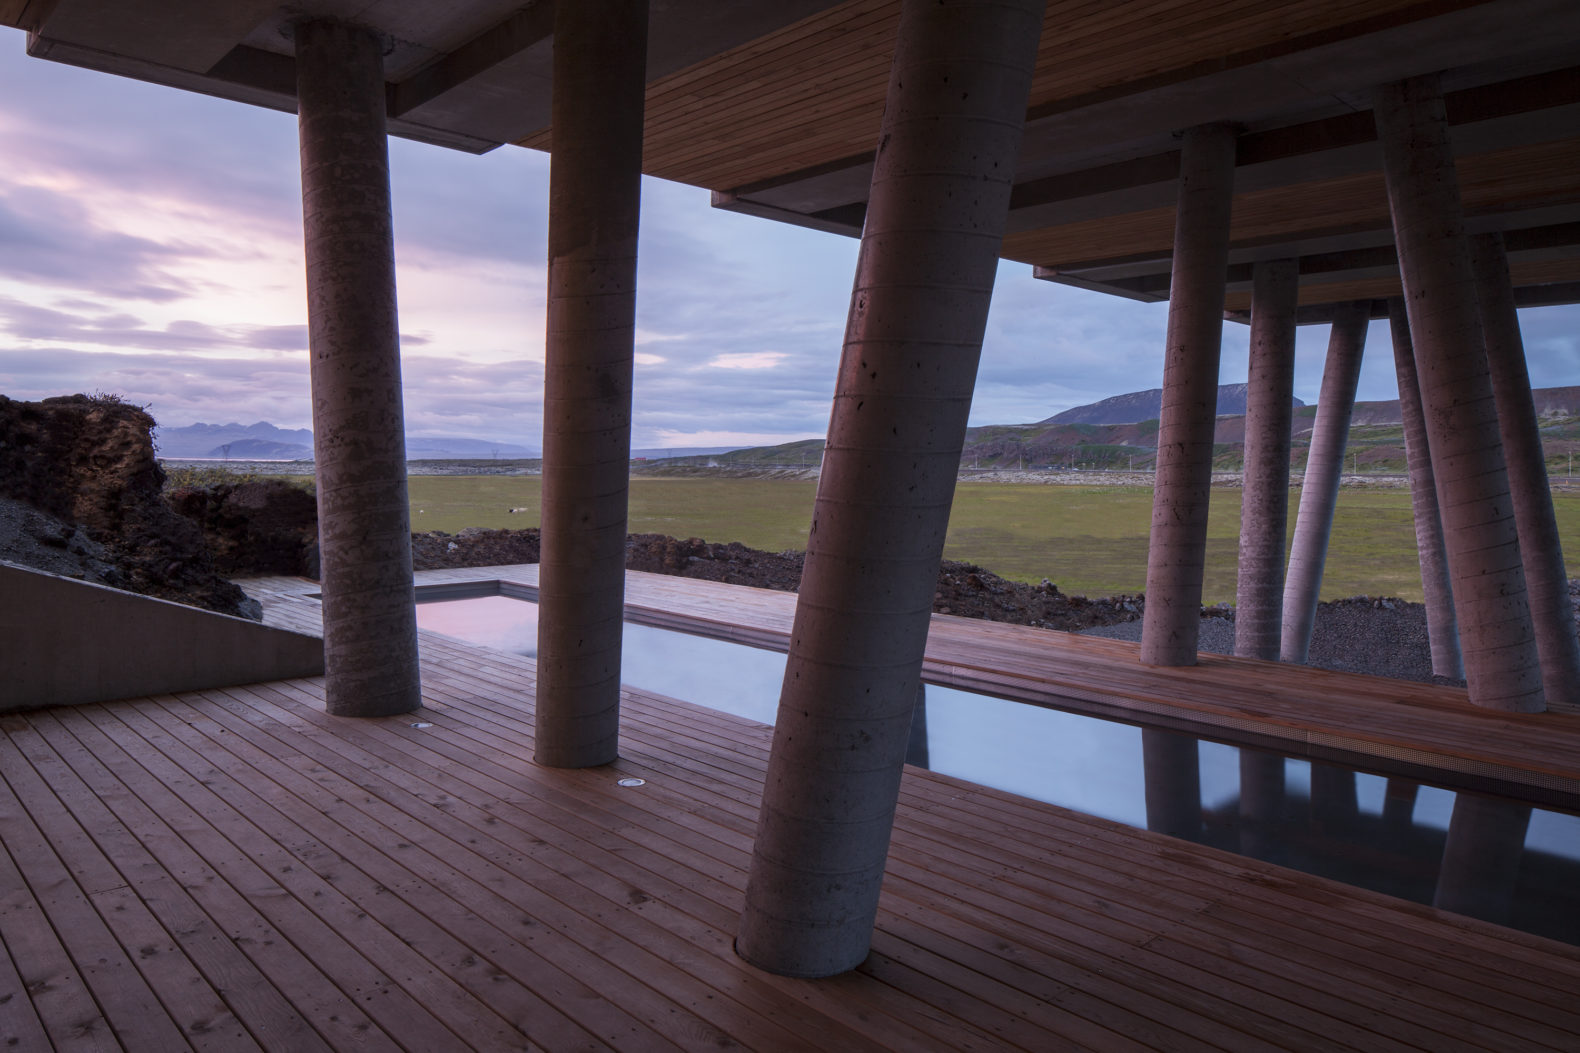 outside-swimming-pool-hottub-sunset-golden-hour-light-ion-luxury-adventure-hotel-iceland